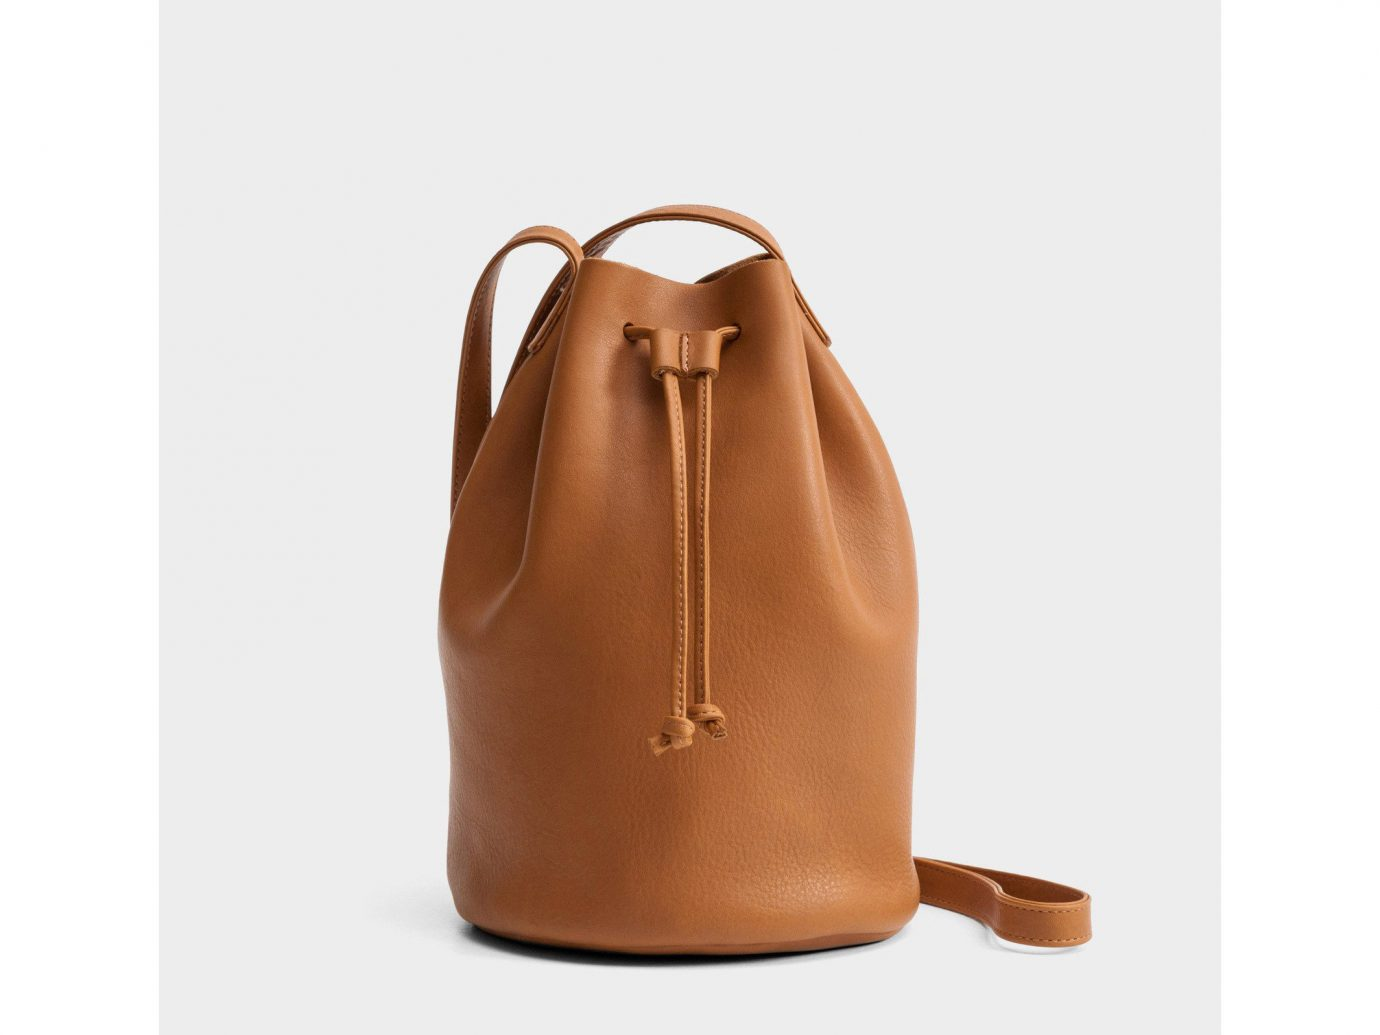 Style + Design brown bag product leather handbag caramel color product design